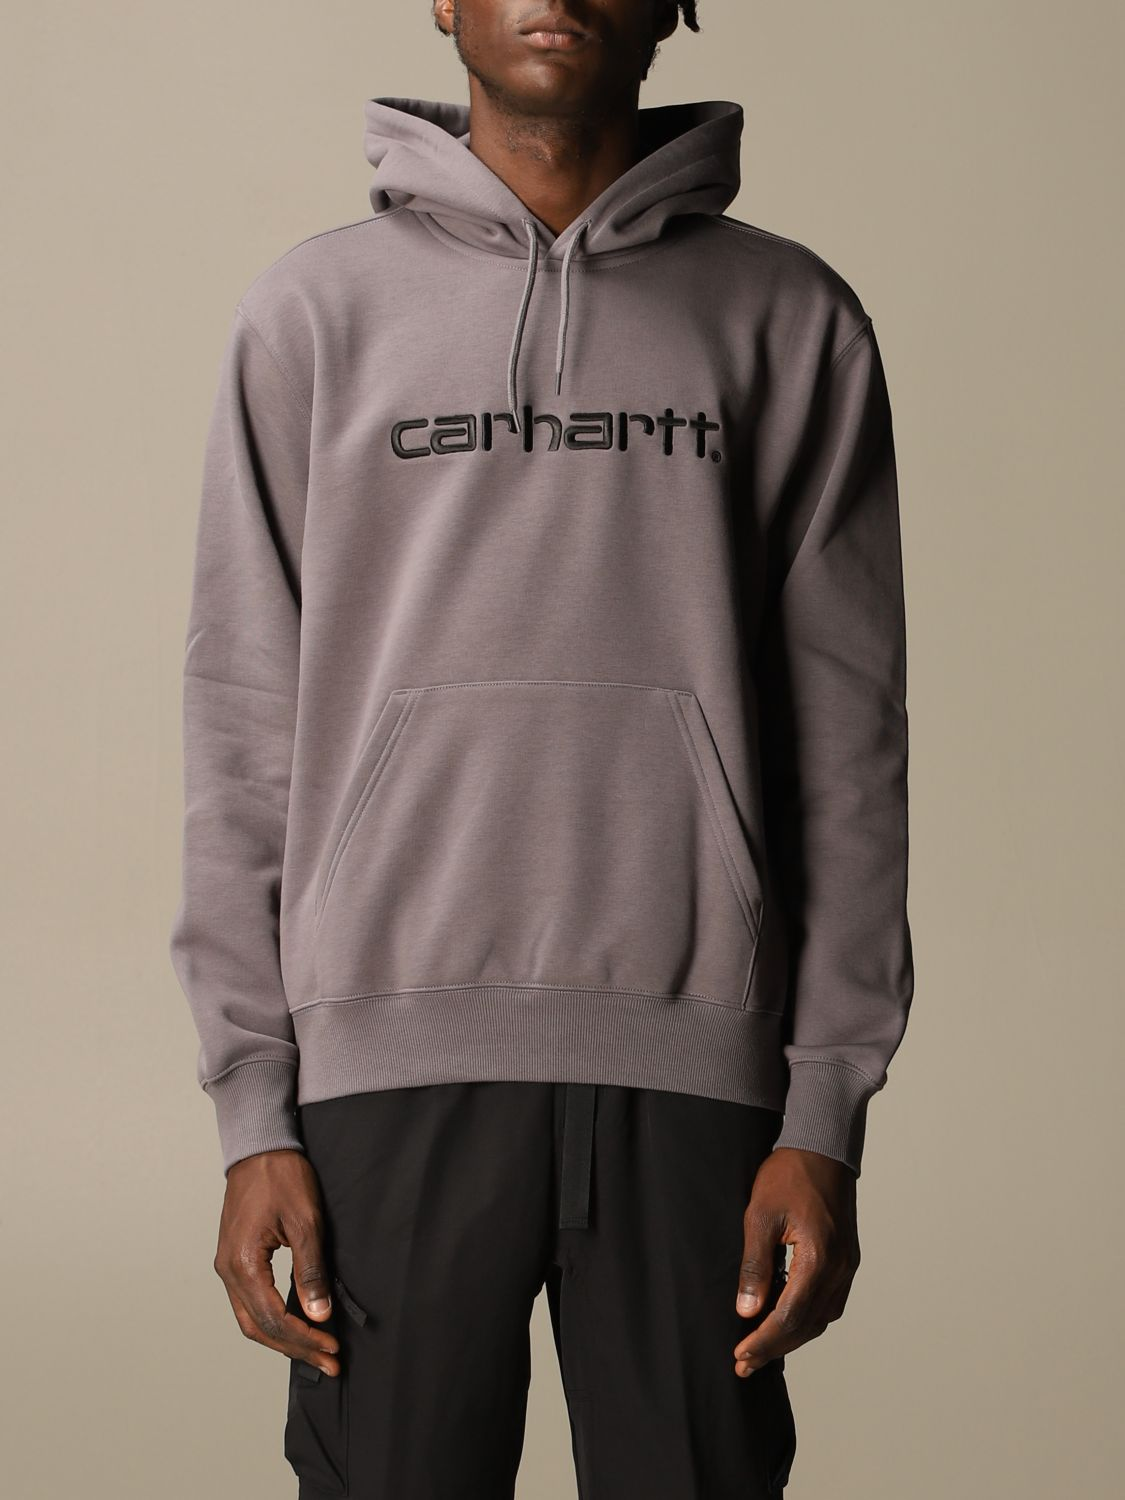 Sweatshirt Carhartt: Sweatshirt men Carhartt black 1 1